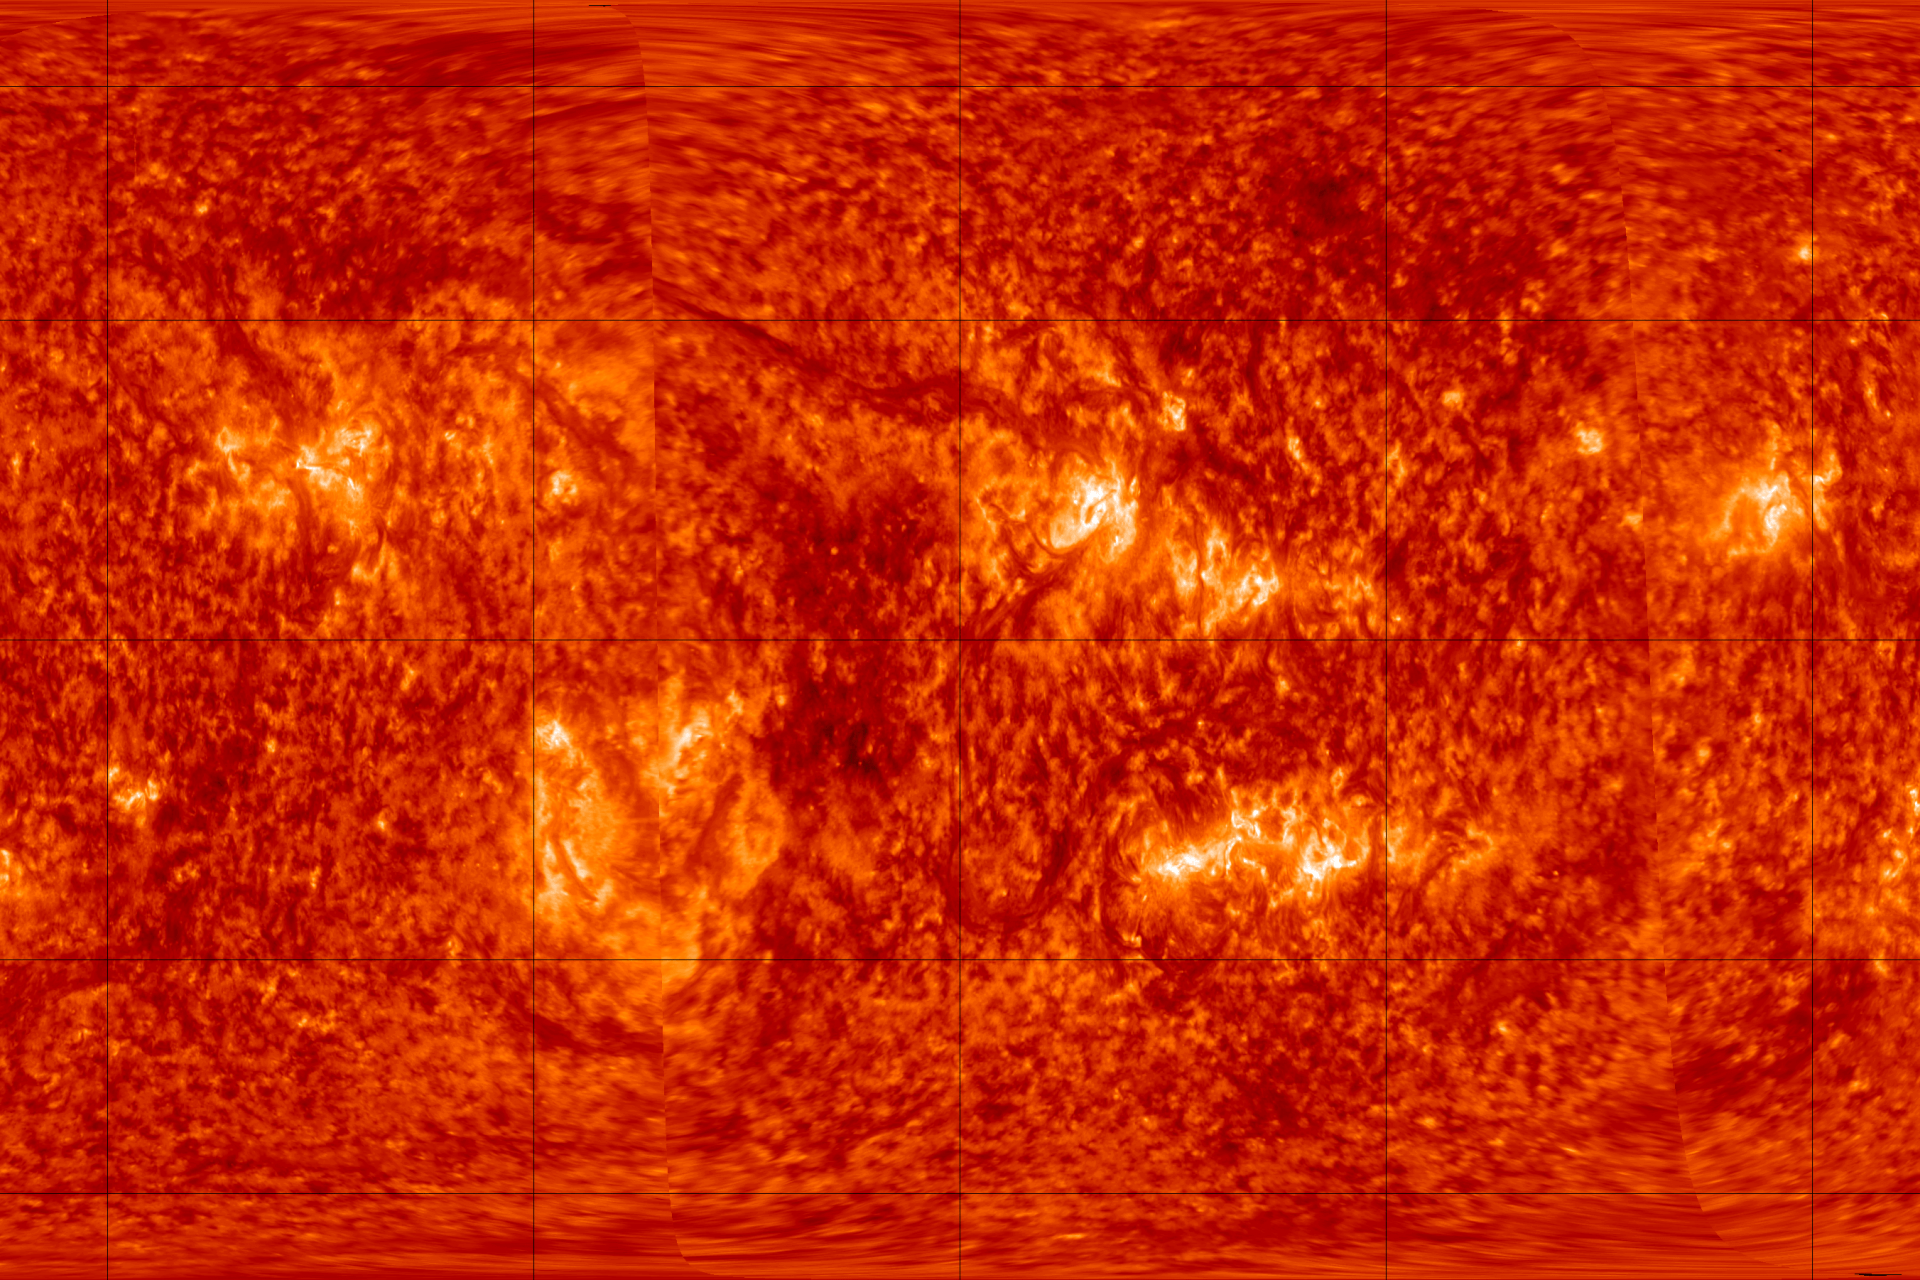 •	Full Sun map of the solar corona at roughly 144,000 F (80,000 C) acquired simultaneously by the two STEREO EUV imagers. Before STEREO, this capability was available for Earth observations only.